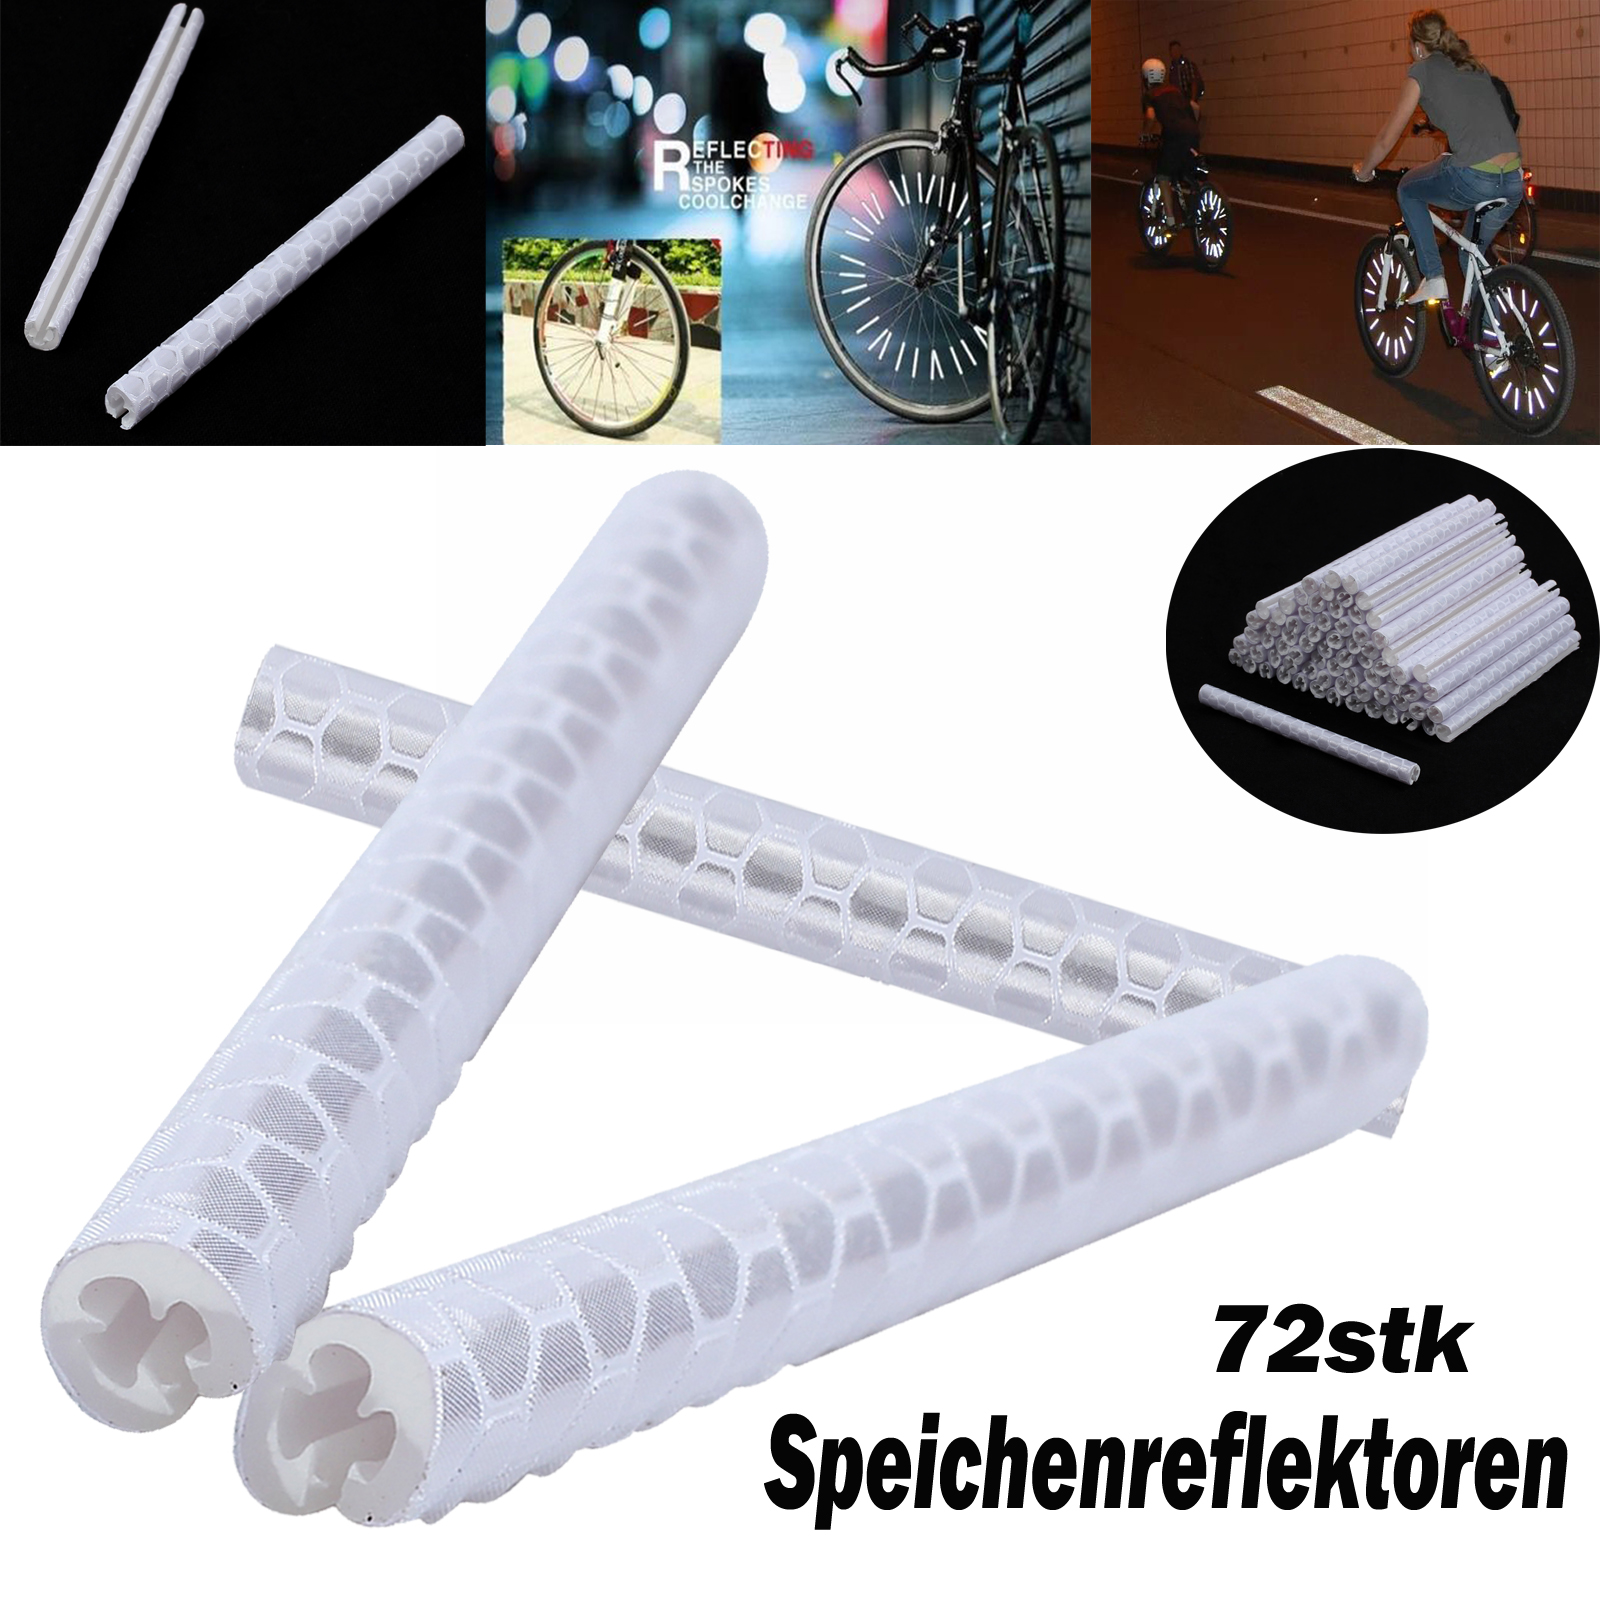 72x fahrrad reflektor speichen reflektoren speichenreflektoren sicherheit tube ebay. Black Bedroom Furniture Sets. Home Design Ideas